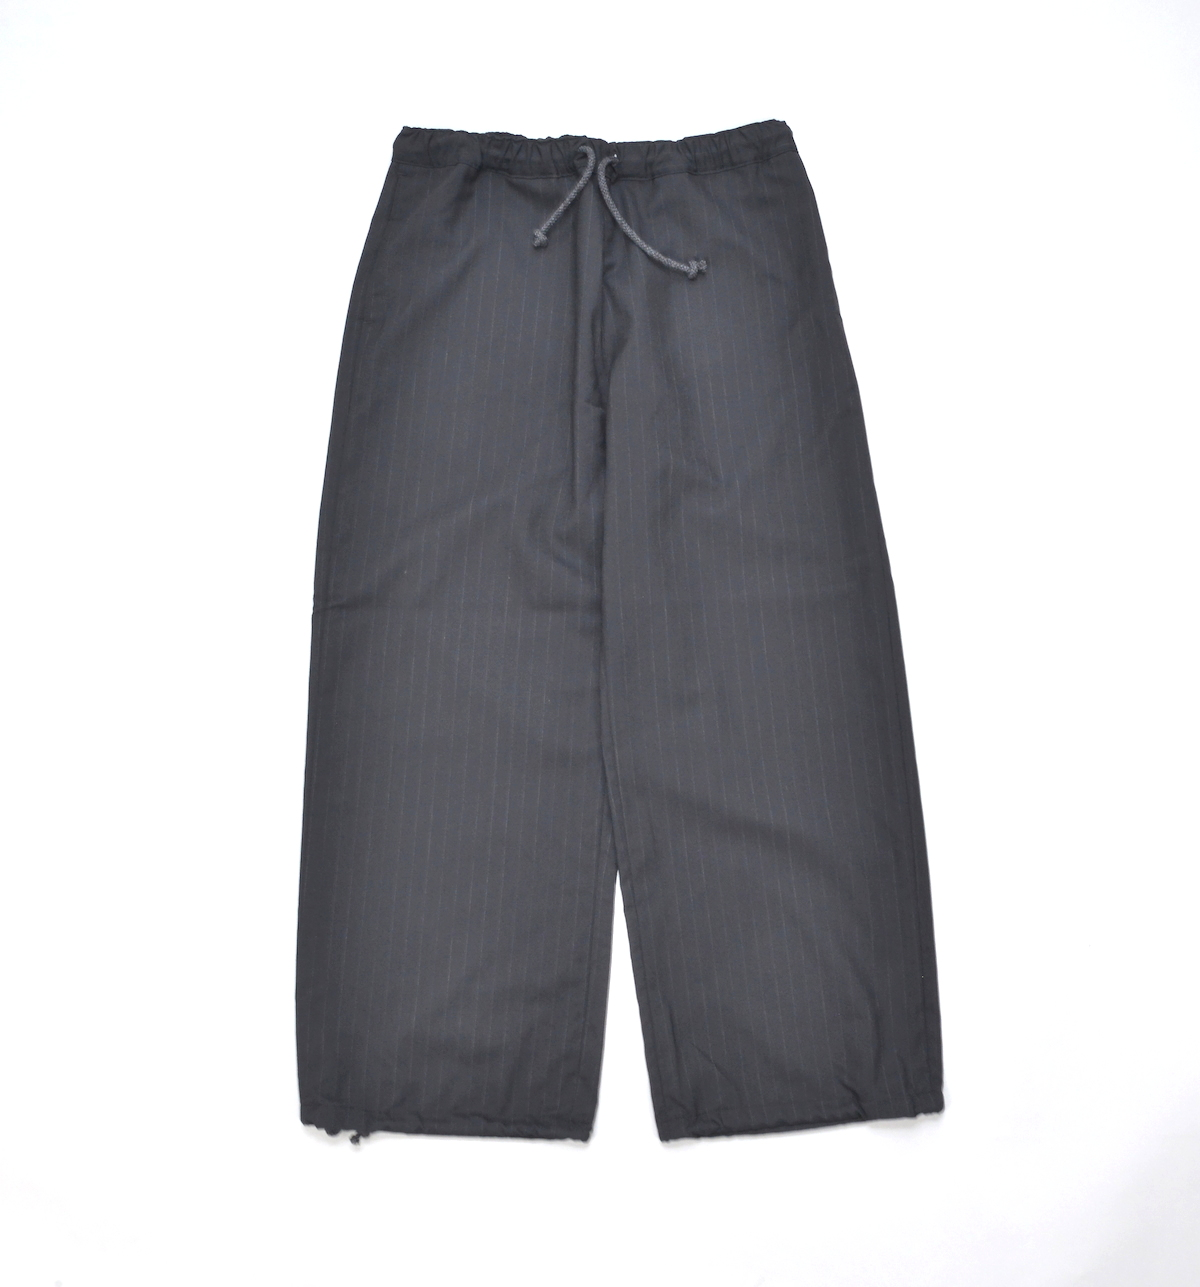 POLYPLOID「OVER PANTS TYPE-B / BLACK 」